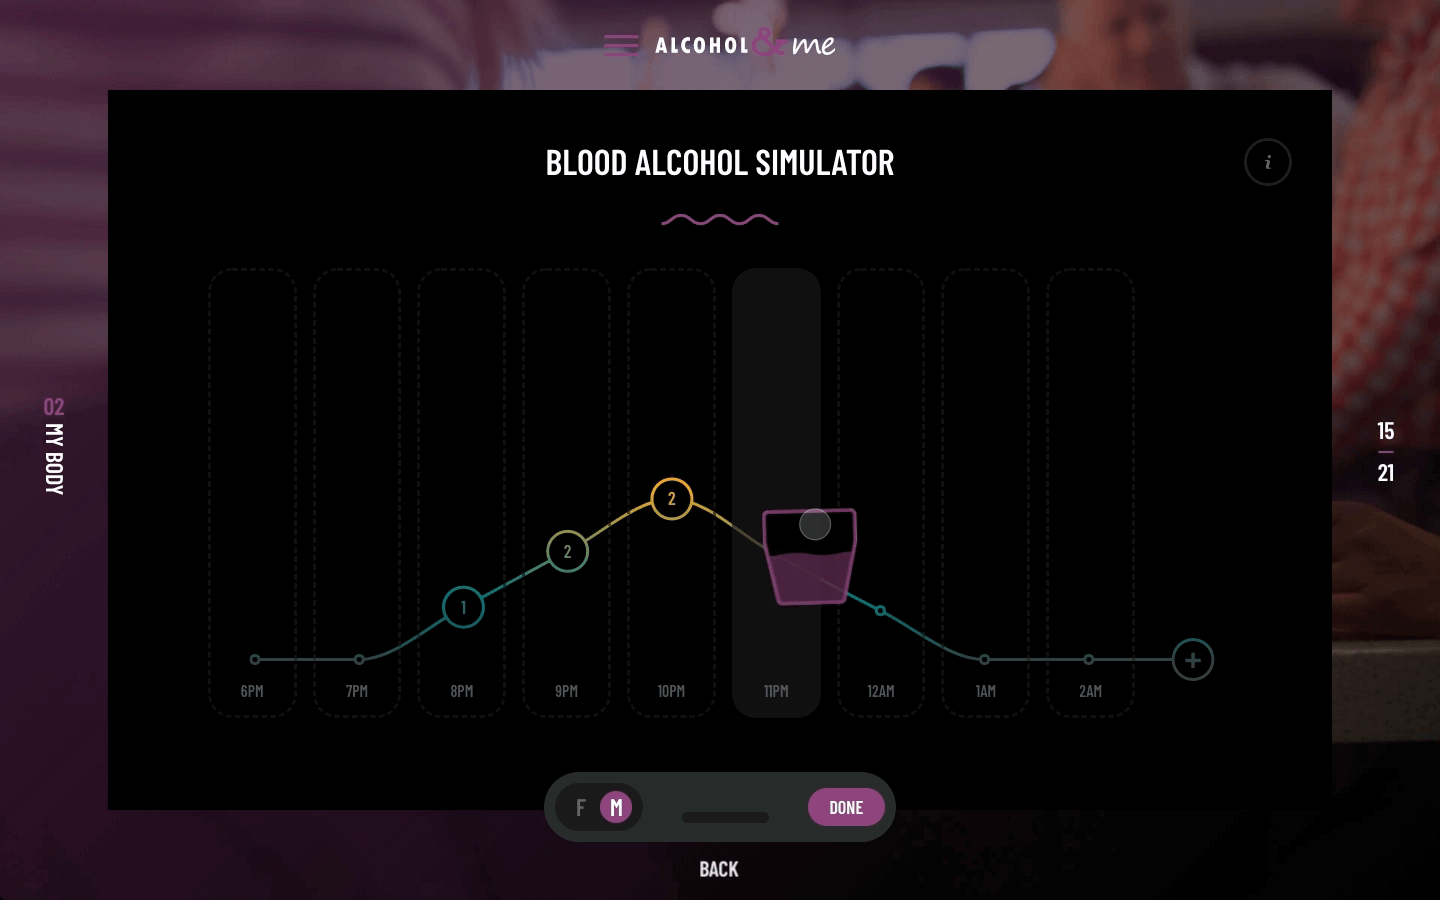 Lion New Zealand's alcohol education platform Alcohol&Me gets reimagined by YoungShand